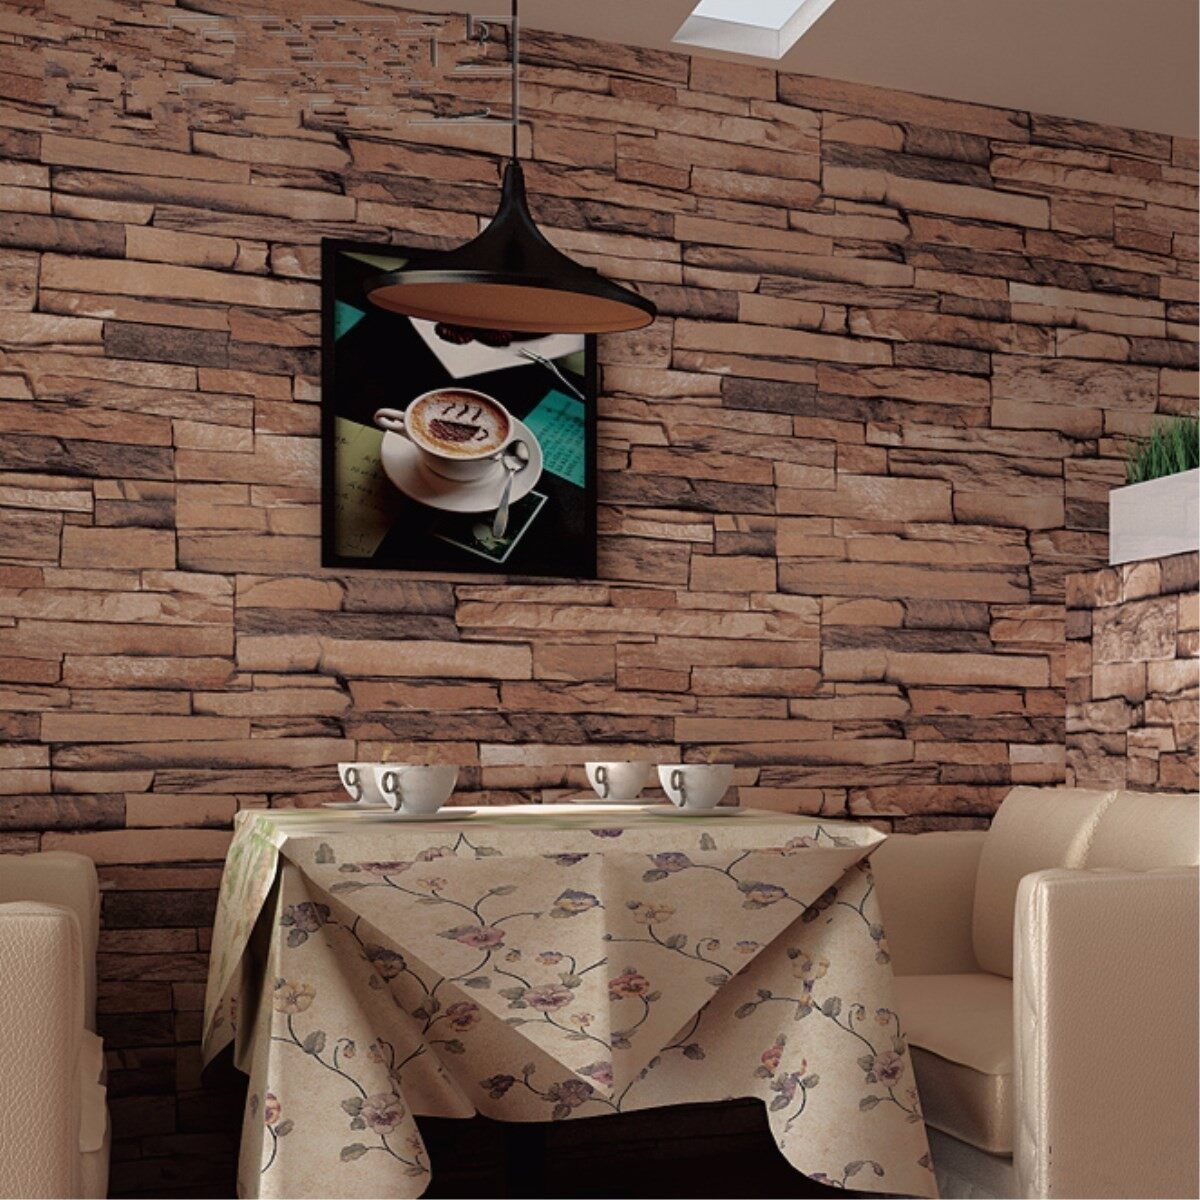 3D Wallpaper Bedroom Background Decor Slate Brick Stone Neutral Textured Art - intl